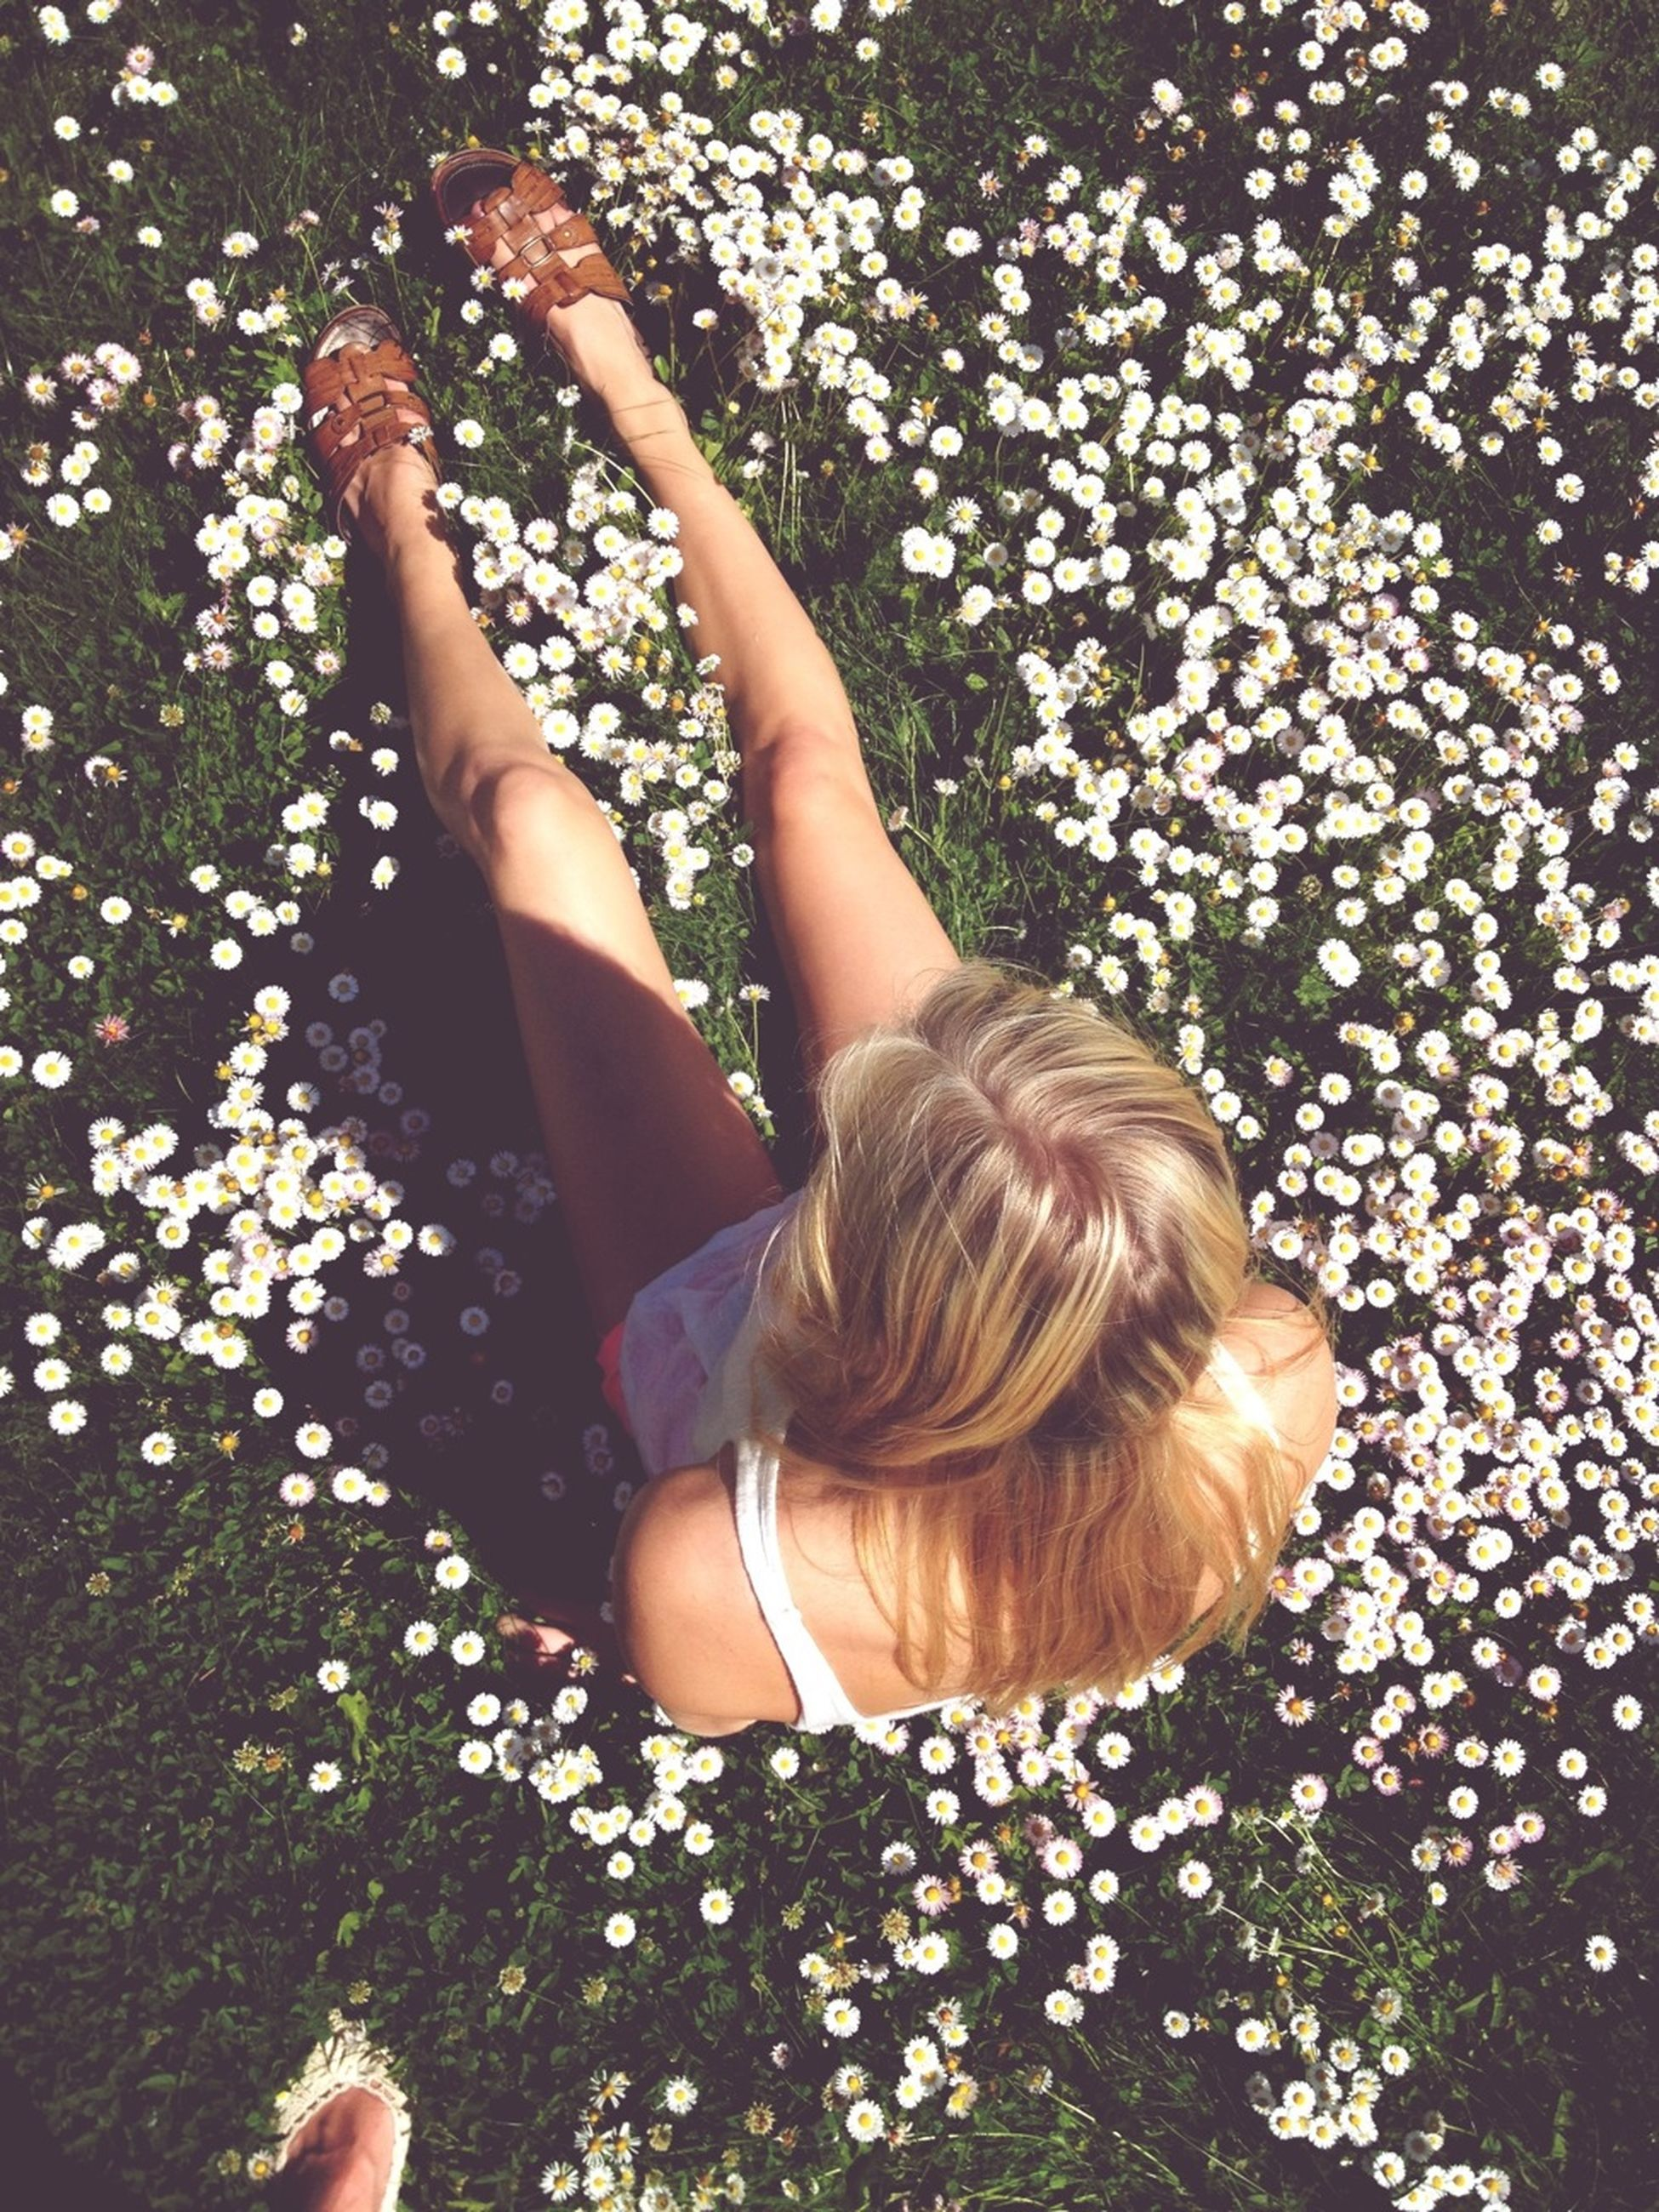 lifestyles, leisure activity, young women, person, long hair, young adult, high angle view, casual clothing, grass, girls, relaxation, flower, day, park - man made space, sitting, outdoors, nature